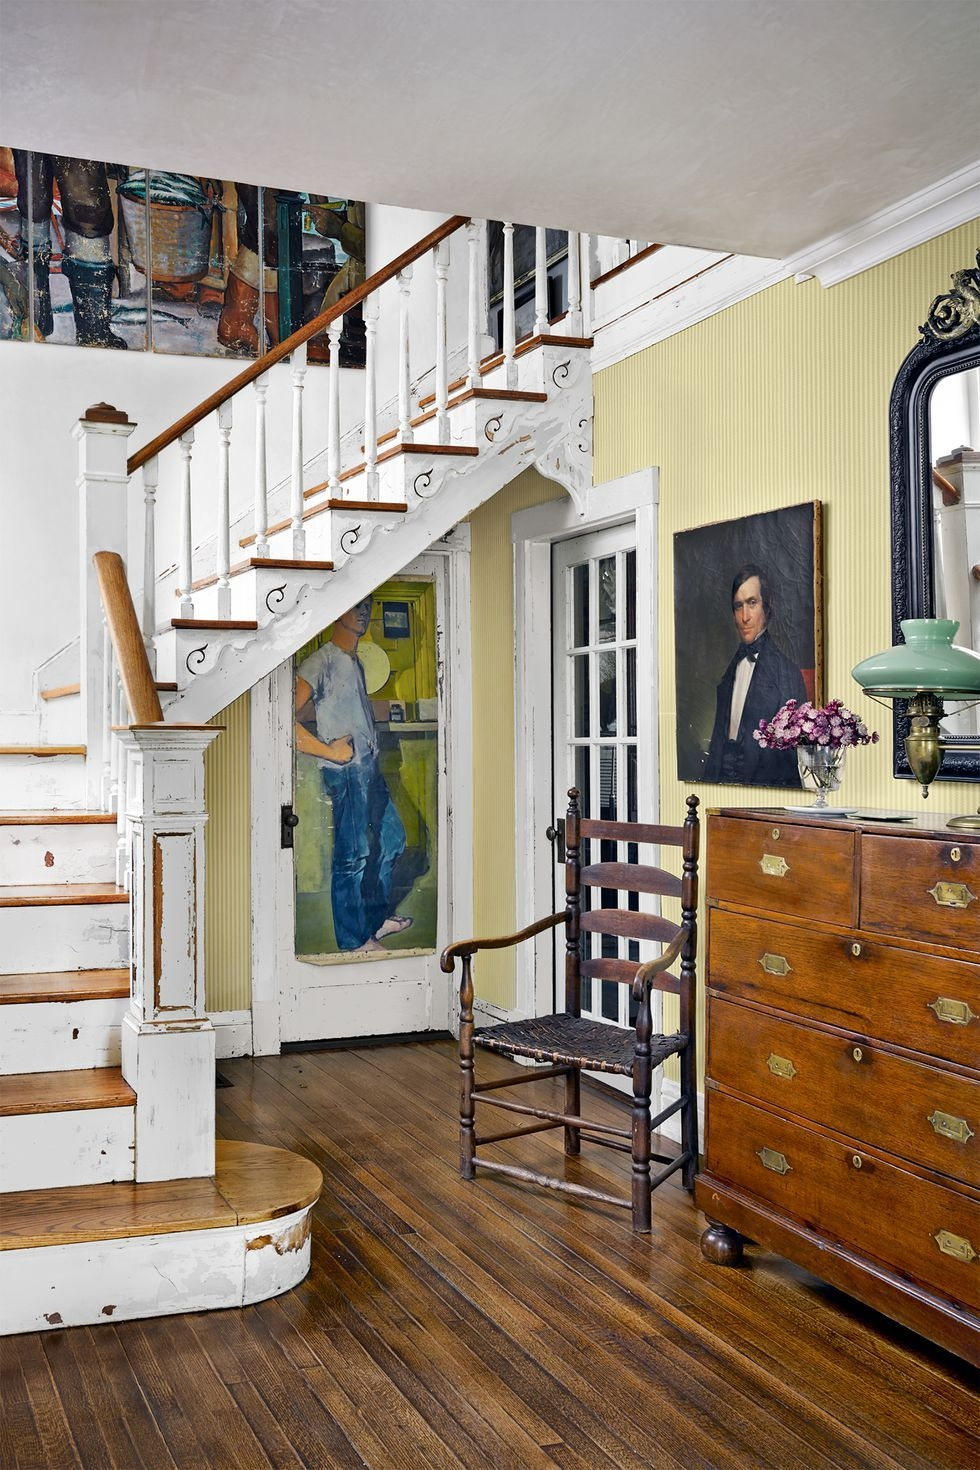 55 Best Staircase Ideas Top Ways To Decorate A Stairway | Best Stair Design For Small House | Under Stairs | Handrail | Space Saving Staircase | Spiral Stair | Stair Case